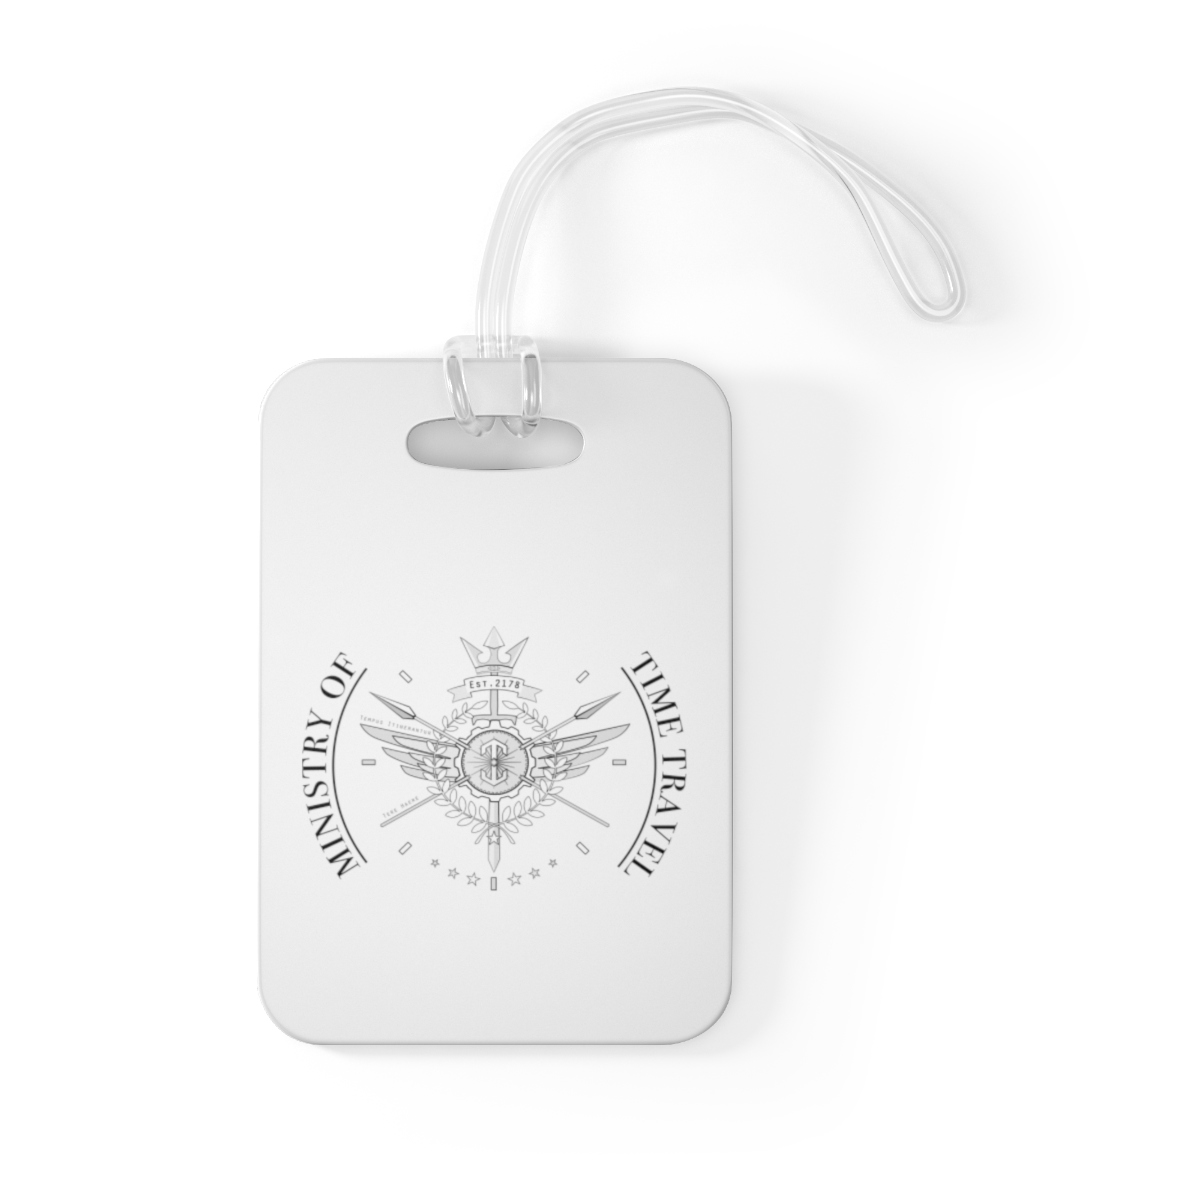 Ministry of Time Travel Bag Tag